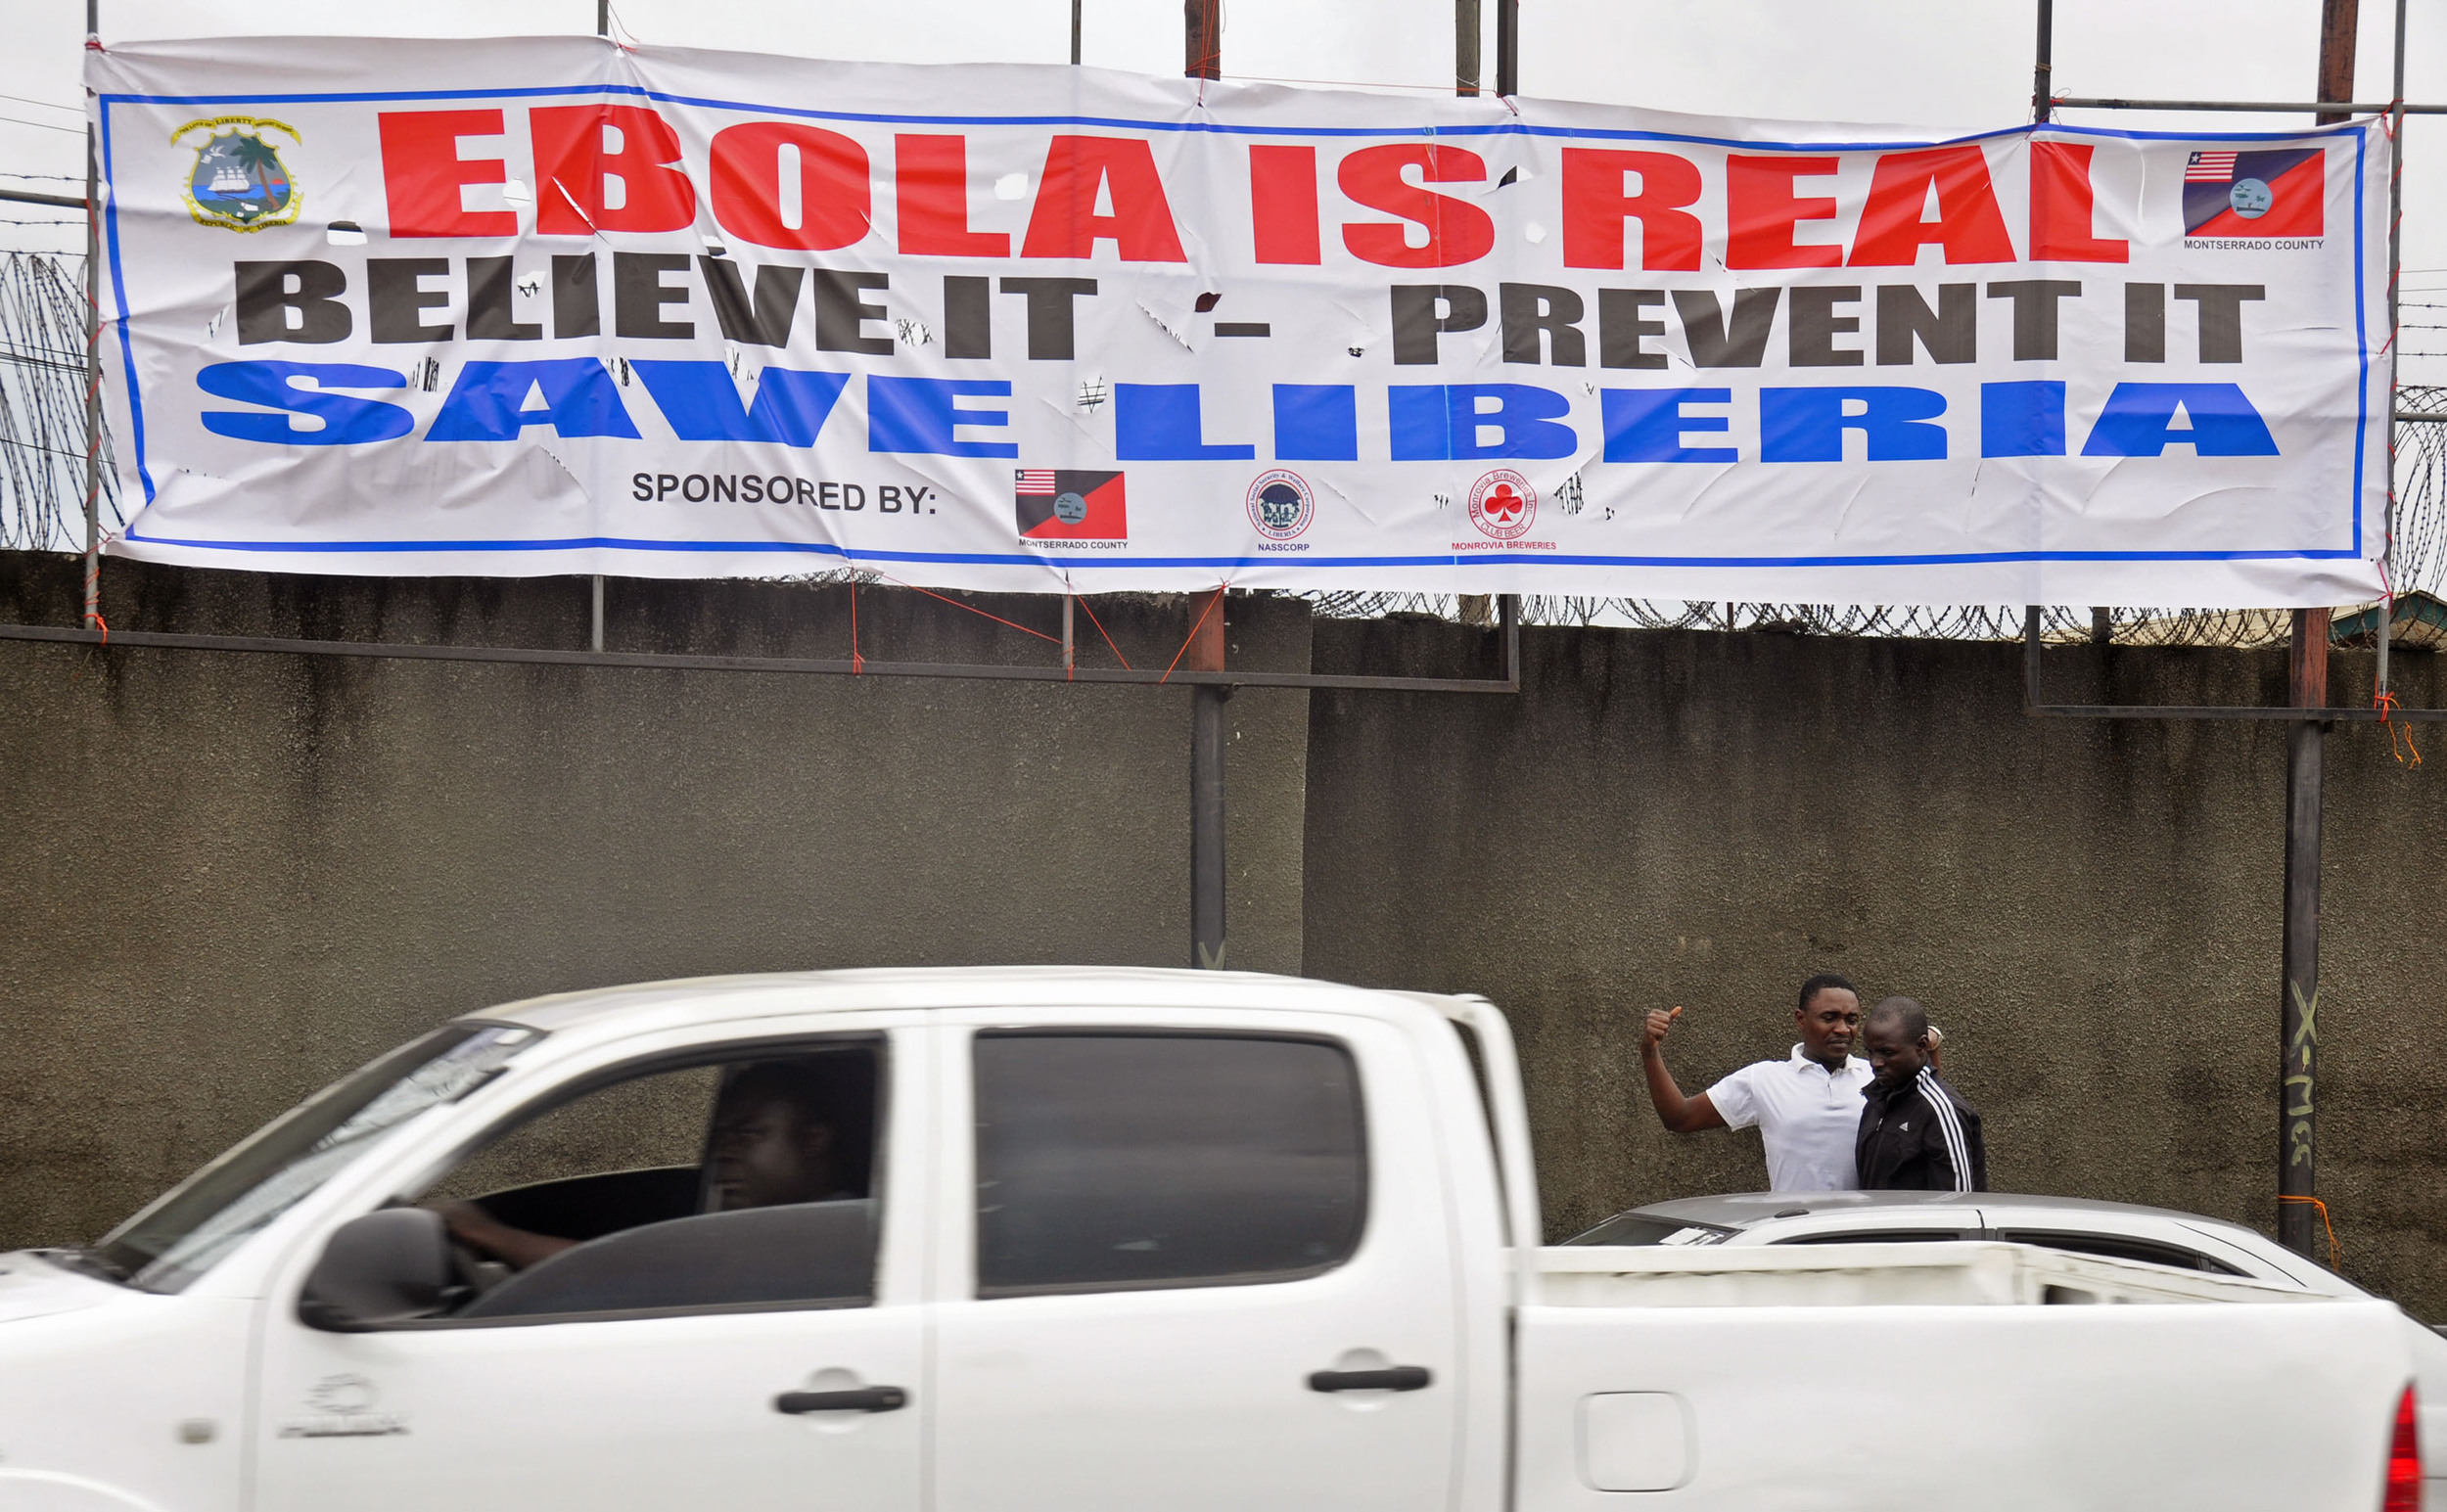 https://i0.wp.com/www.blogcdn.com/slideshows/images/slides/283/175/6/S2831756/slug/l/liberia-west-africa-ebola-1.jpg